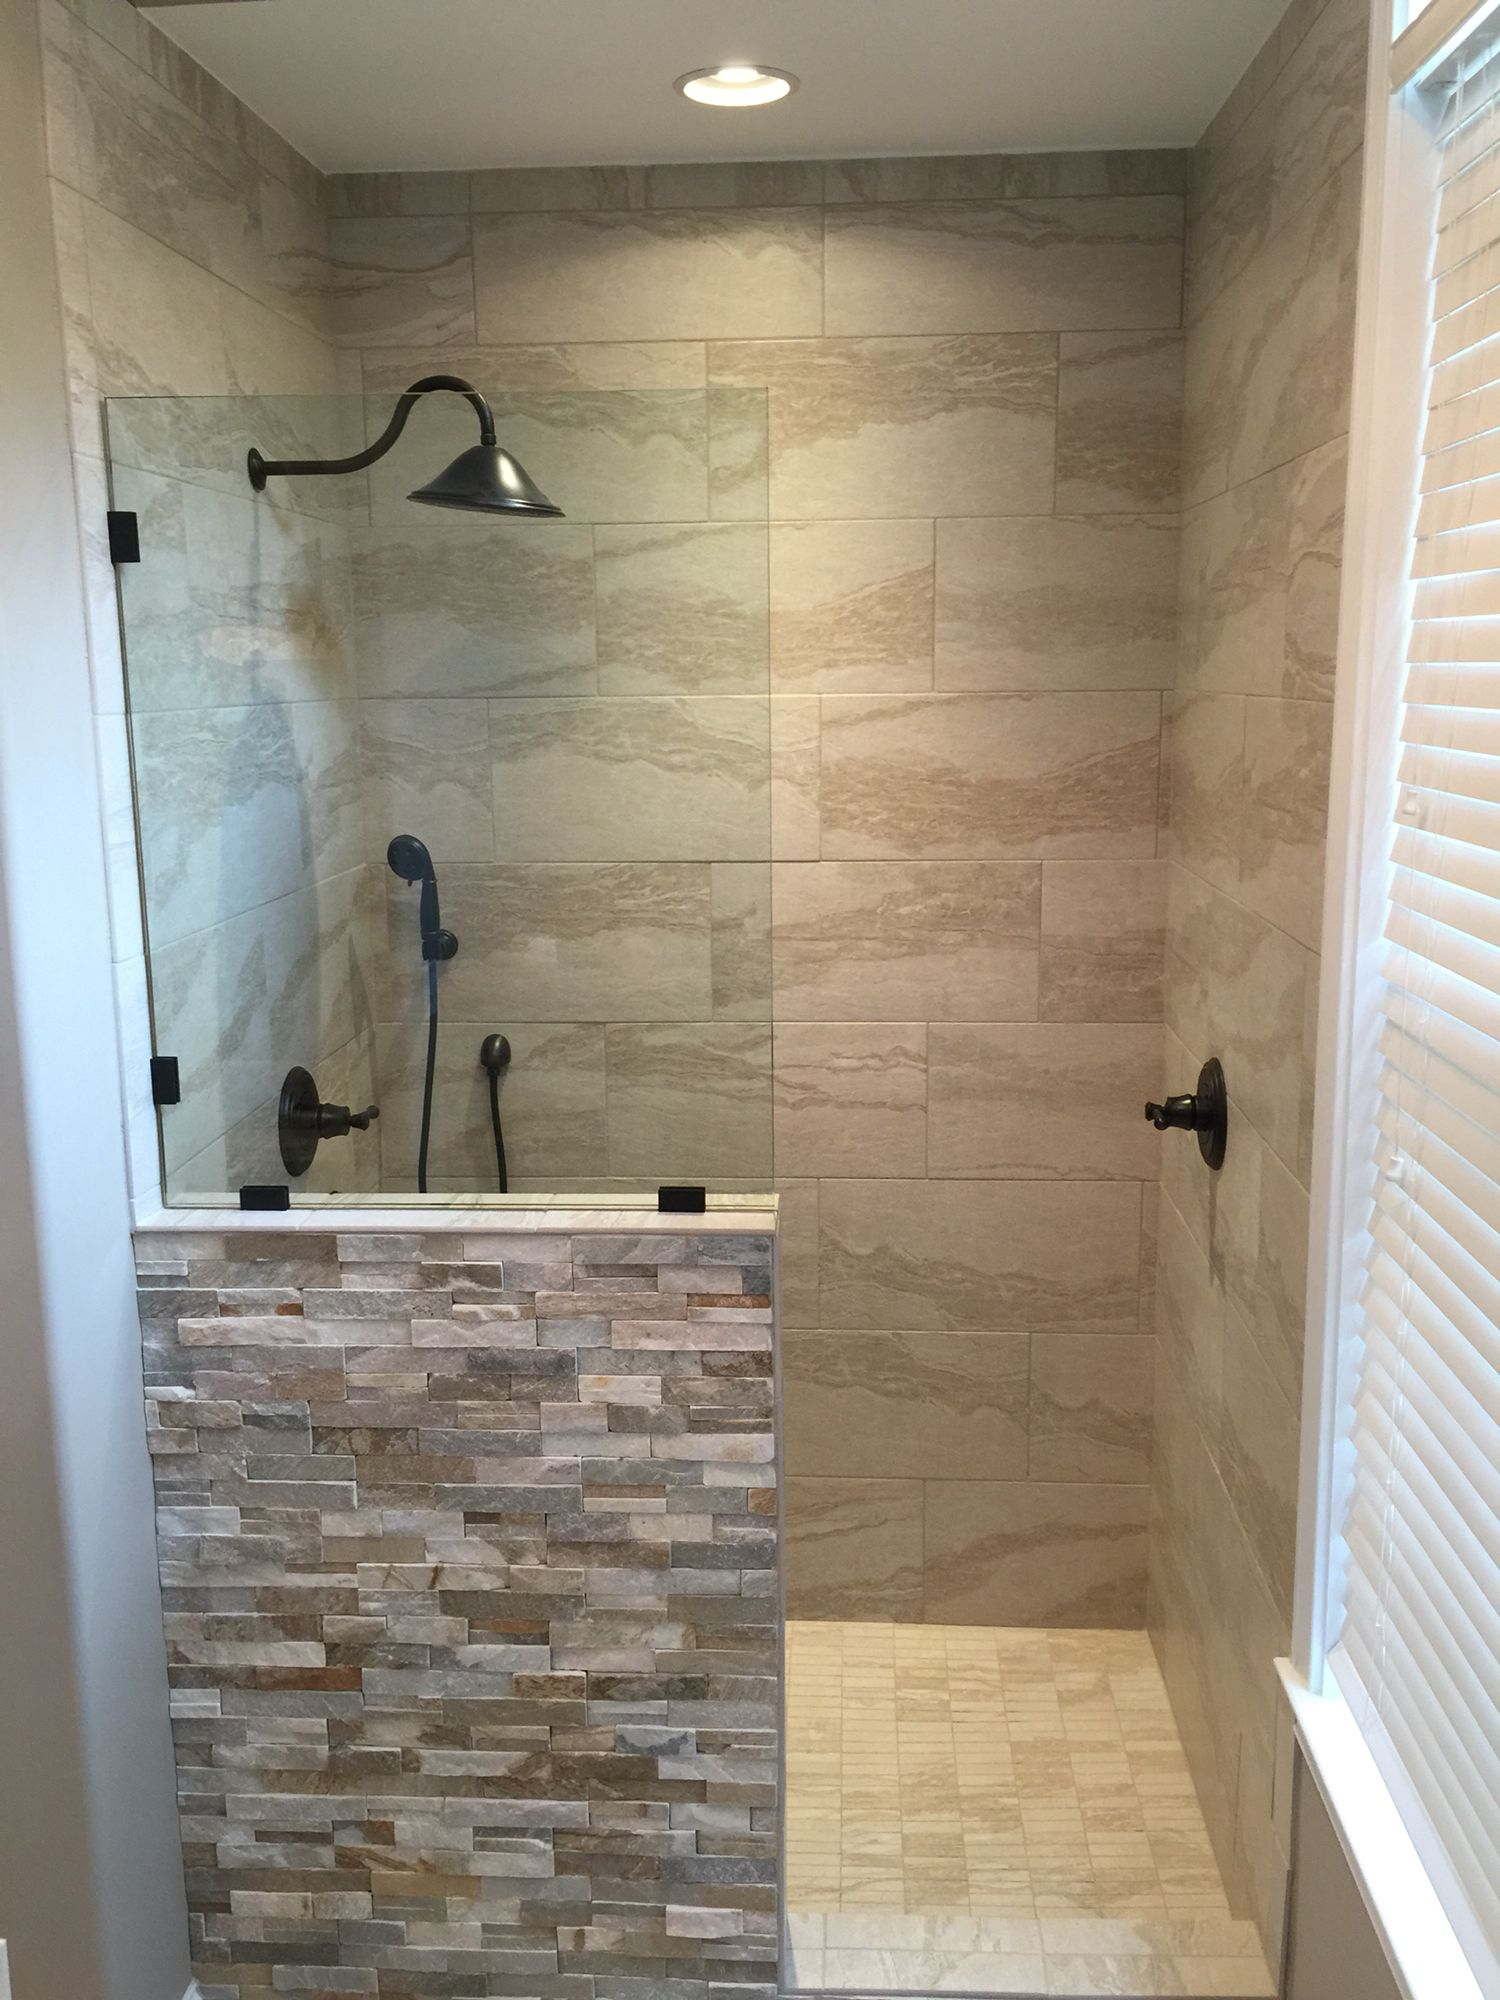 New shower replaced the old jacuzzi tub | Shower remodel ...